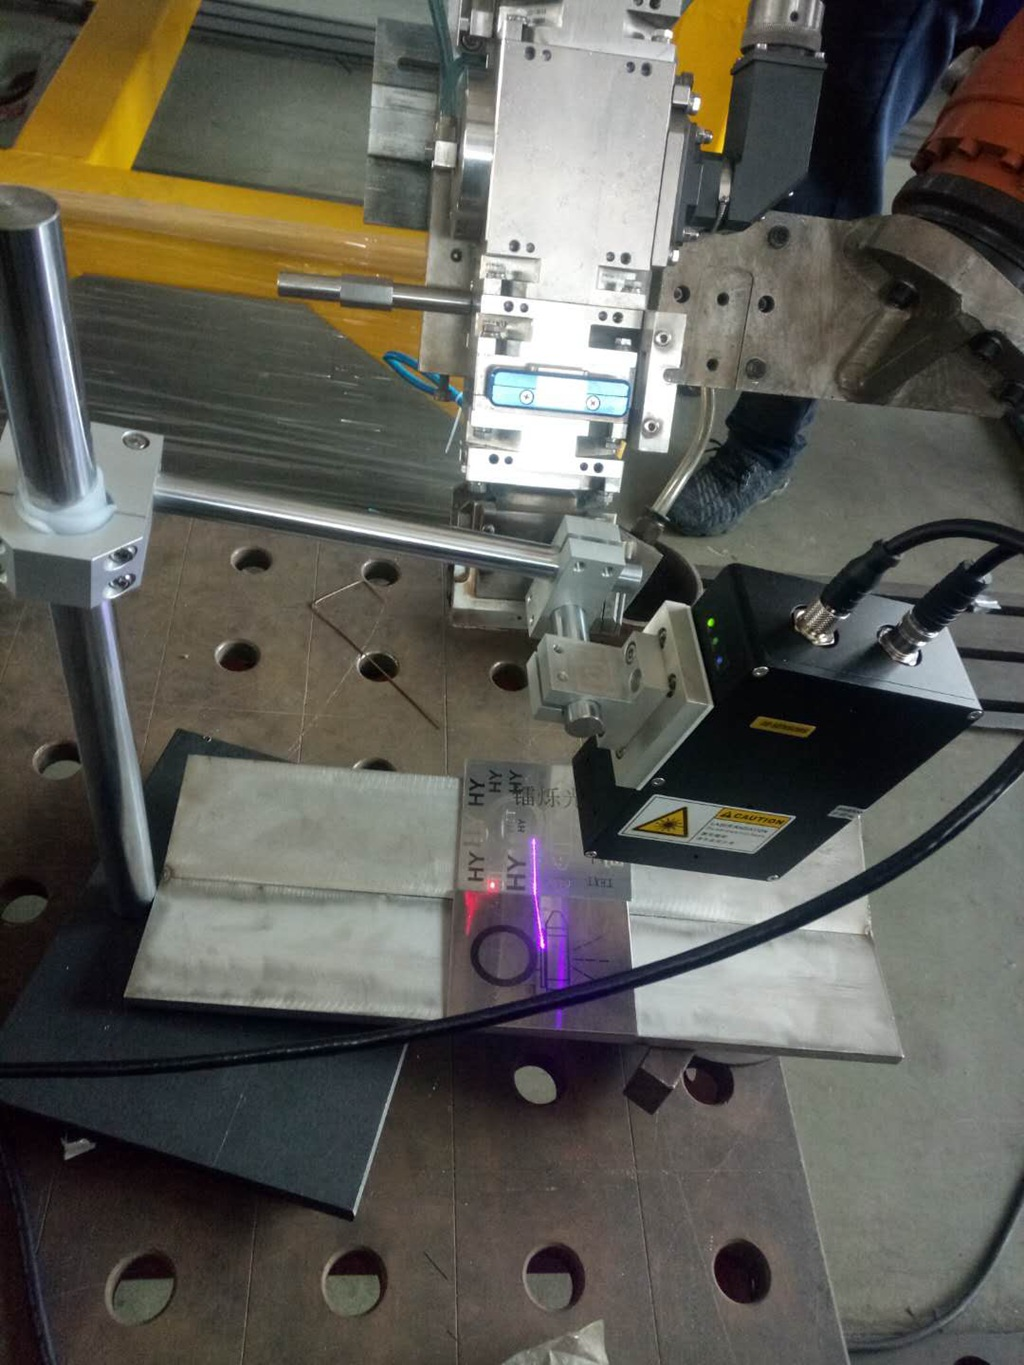 Seam+tracking+sensor+for+laser+welding